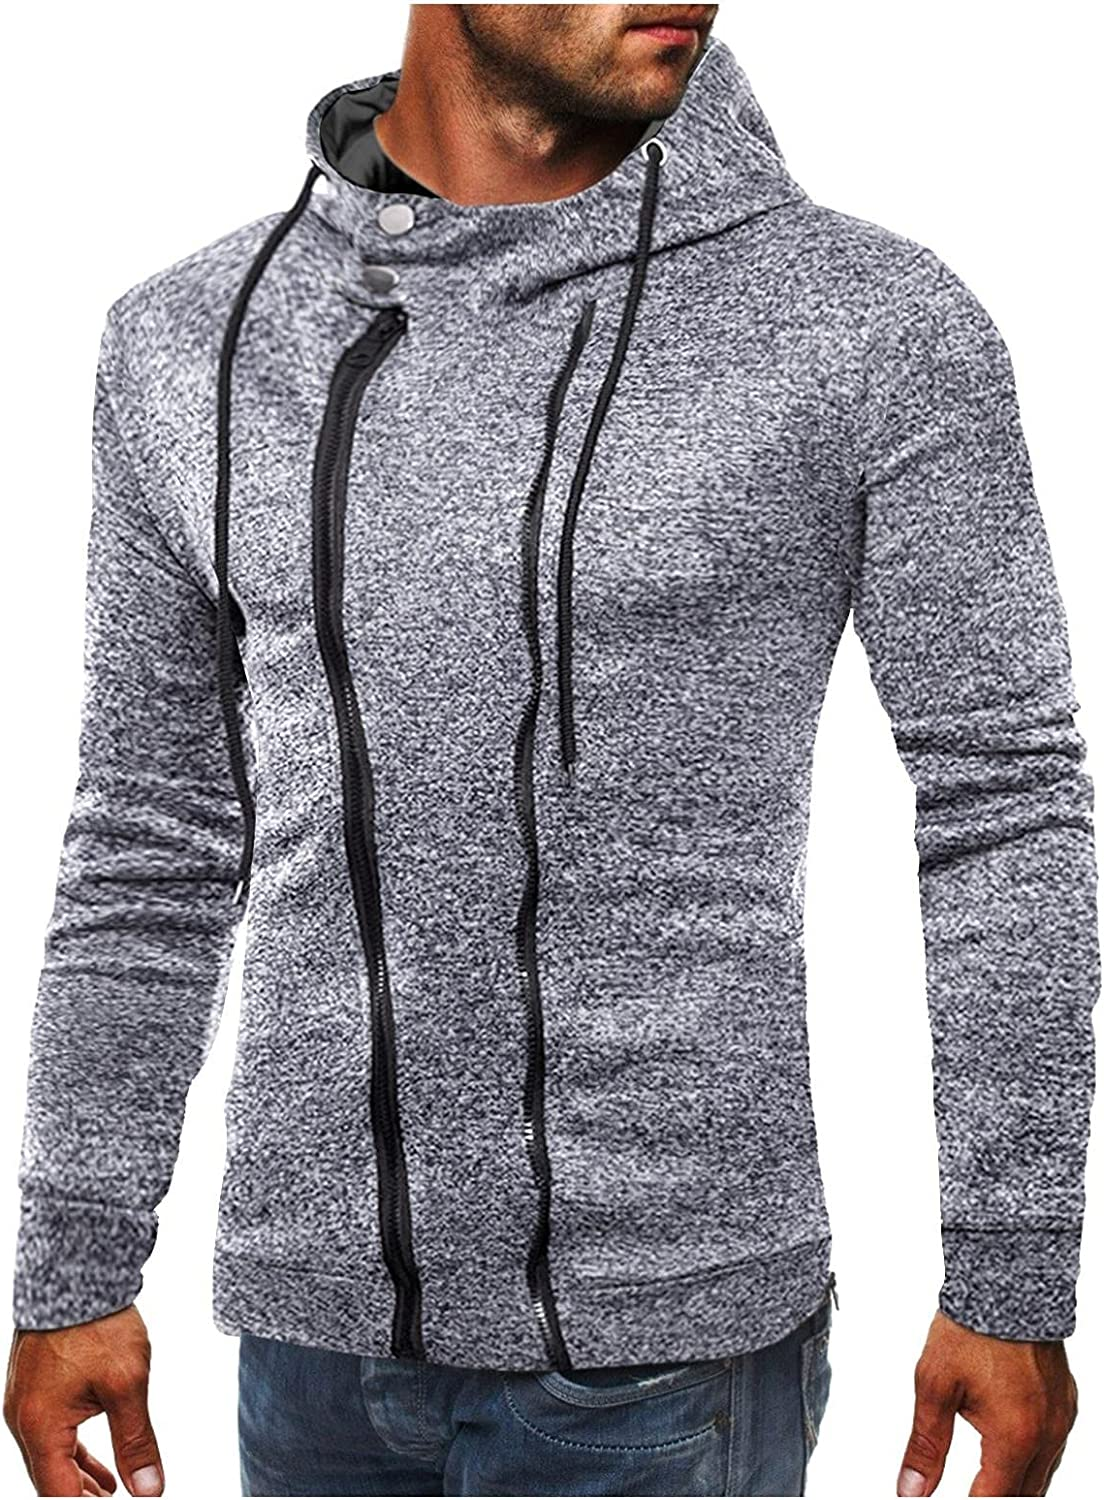 Qsctys Men's Zipper Hoodies Sports Gym Workout Sweatshirts Zip Up Fashion Long Sleeve Shirts Slim Blouse Hooded with Pocket